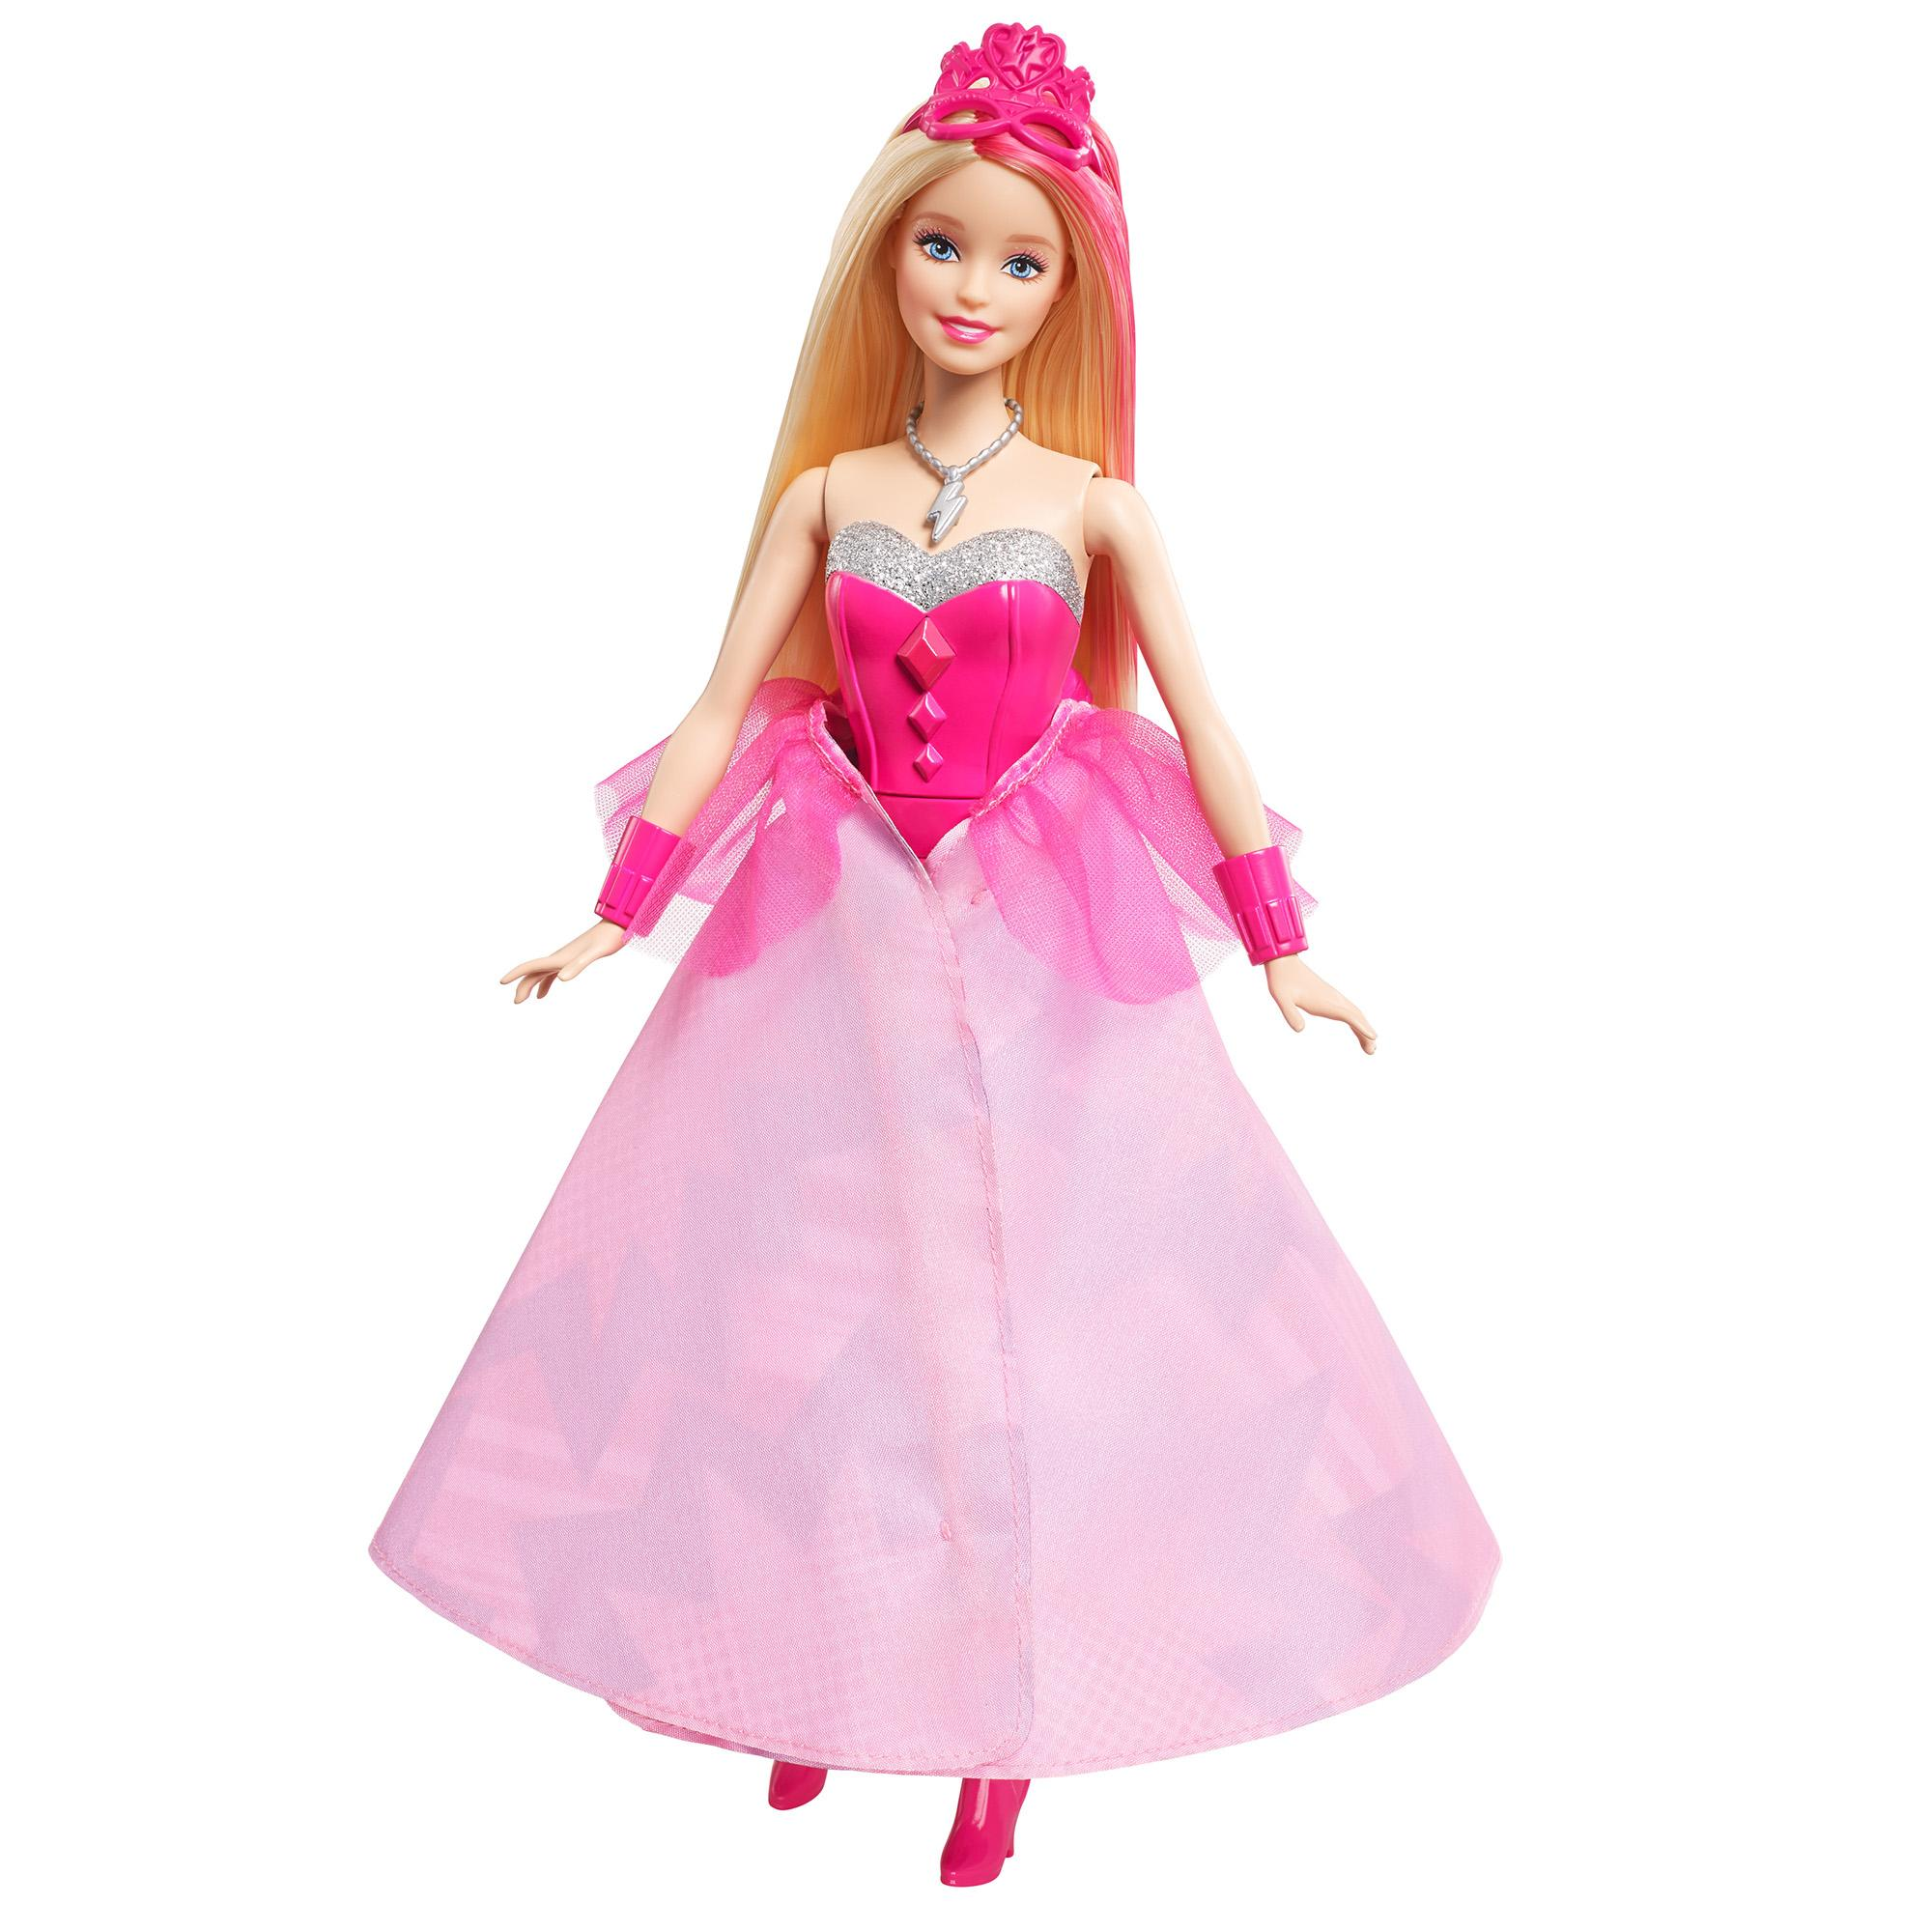 Pink Barbie Doll 613 Kb